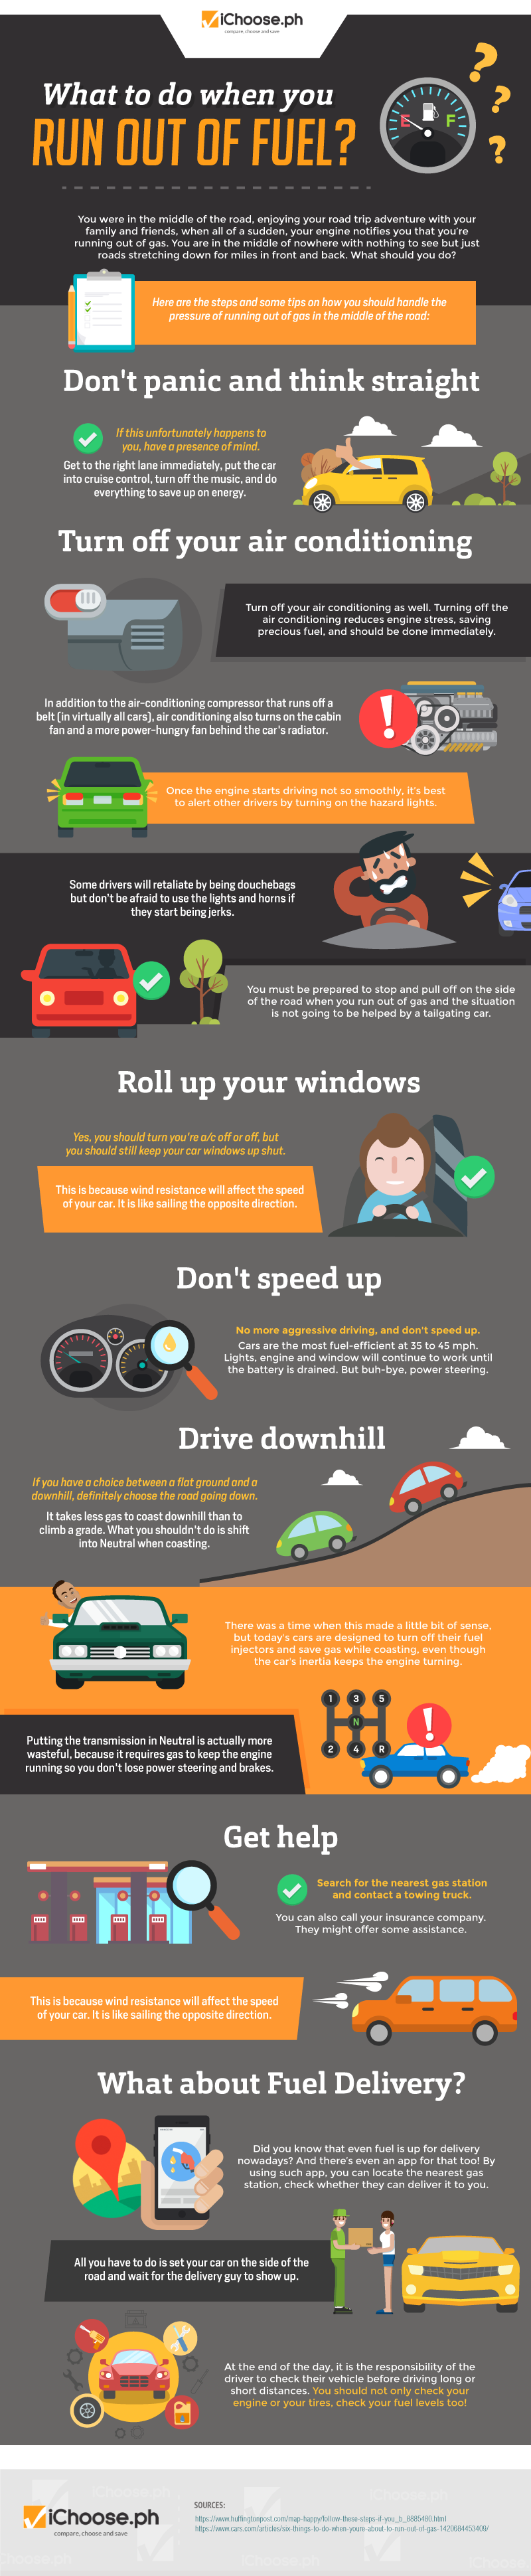 How to Manage When You Suddenly Run Out of Fuel - Infographic